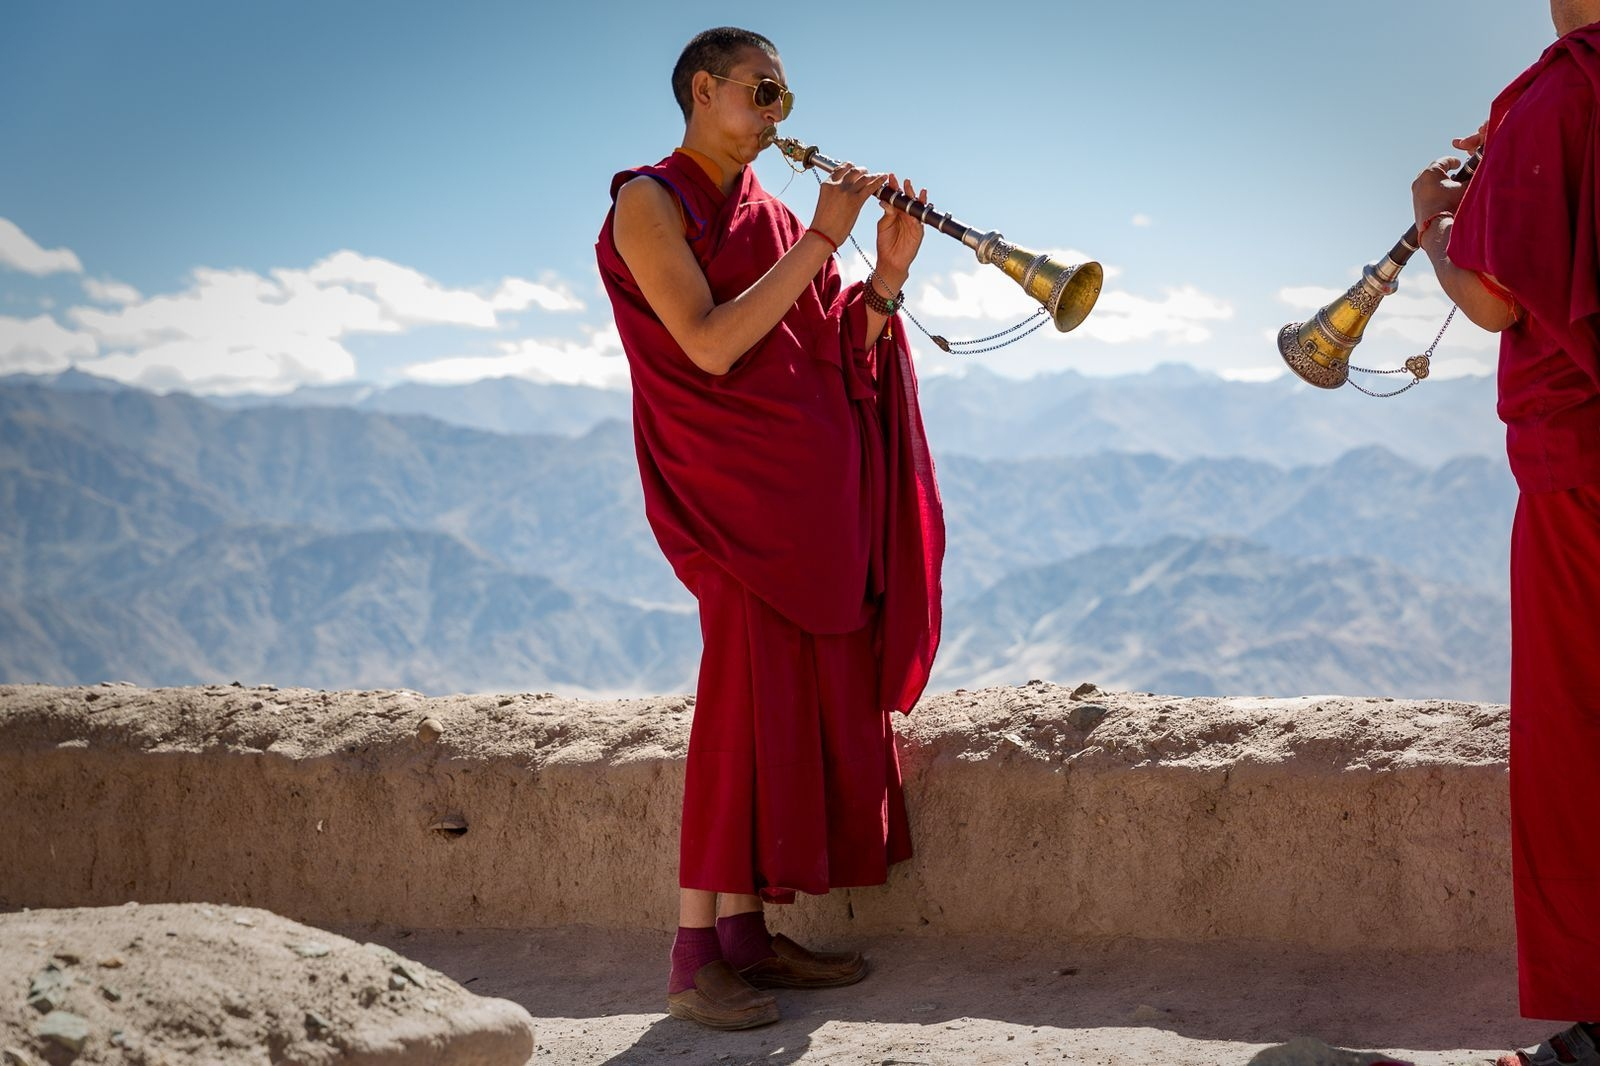 Photograph by Michael Maher, National Geographic Your Shot